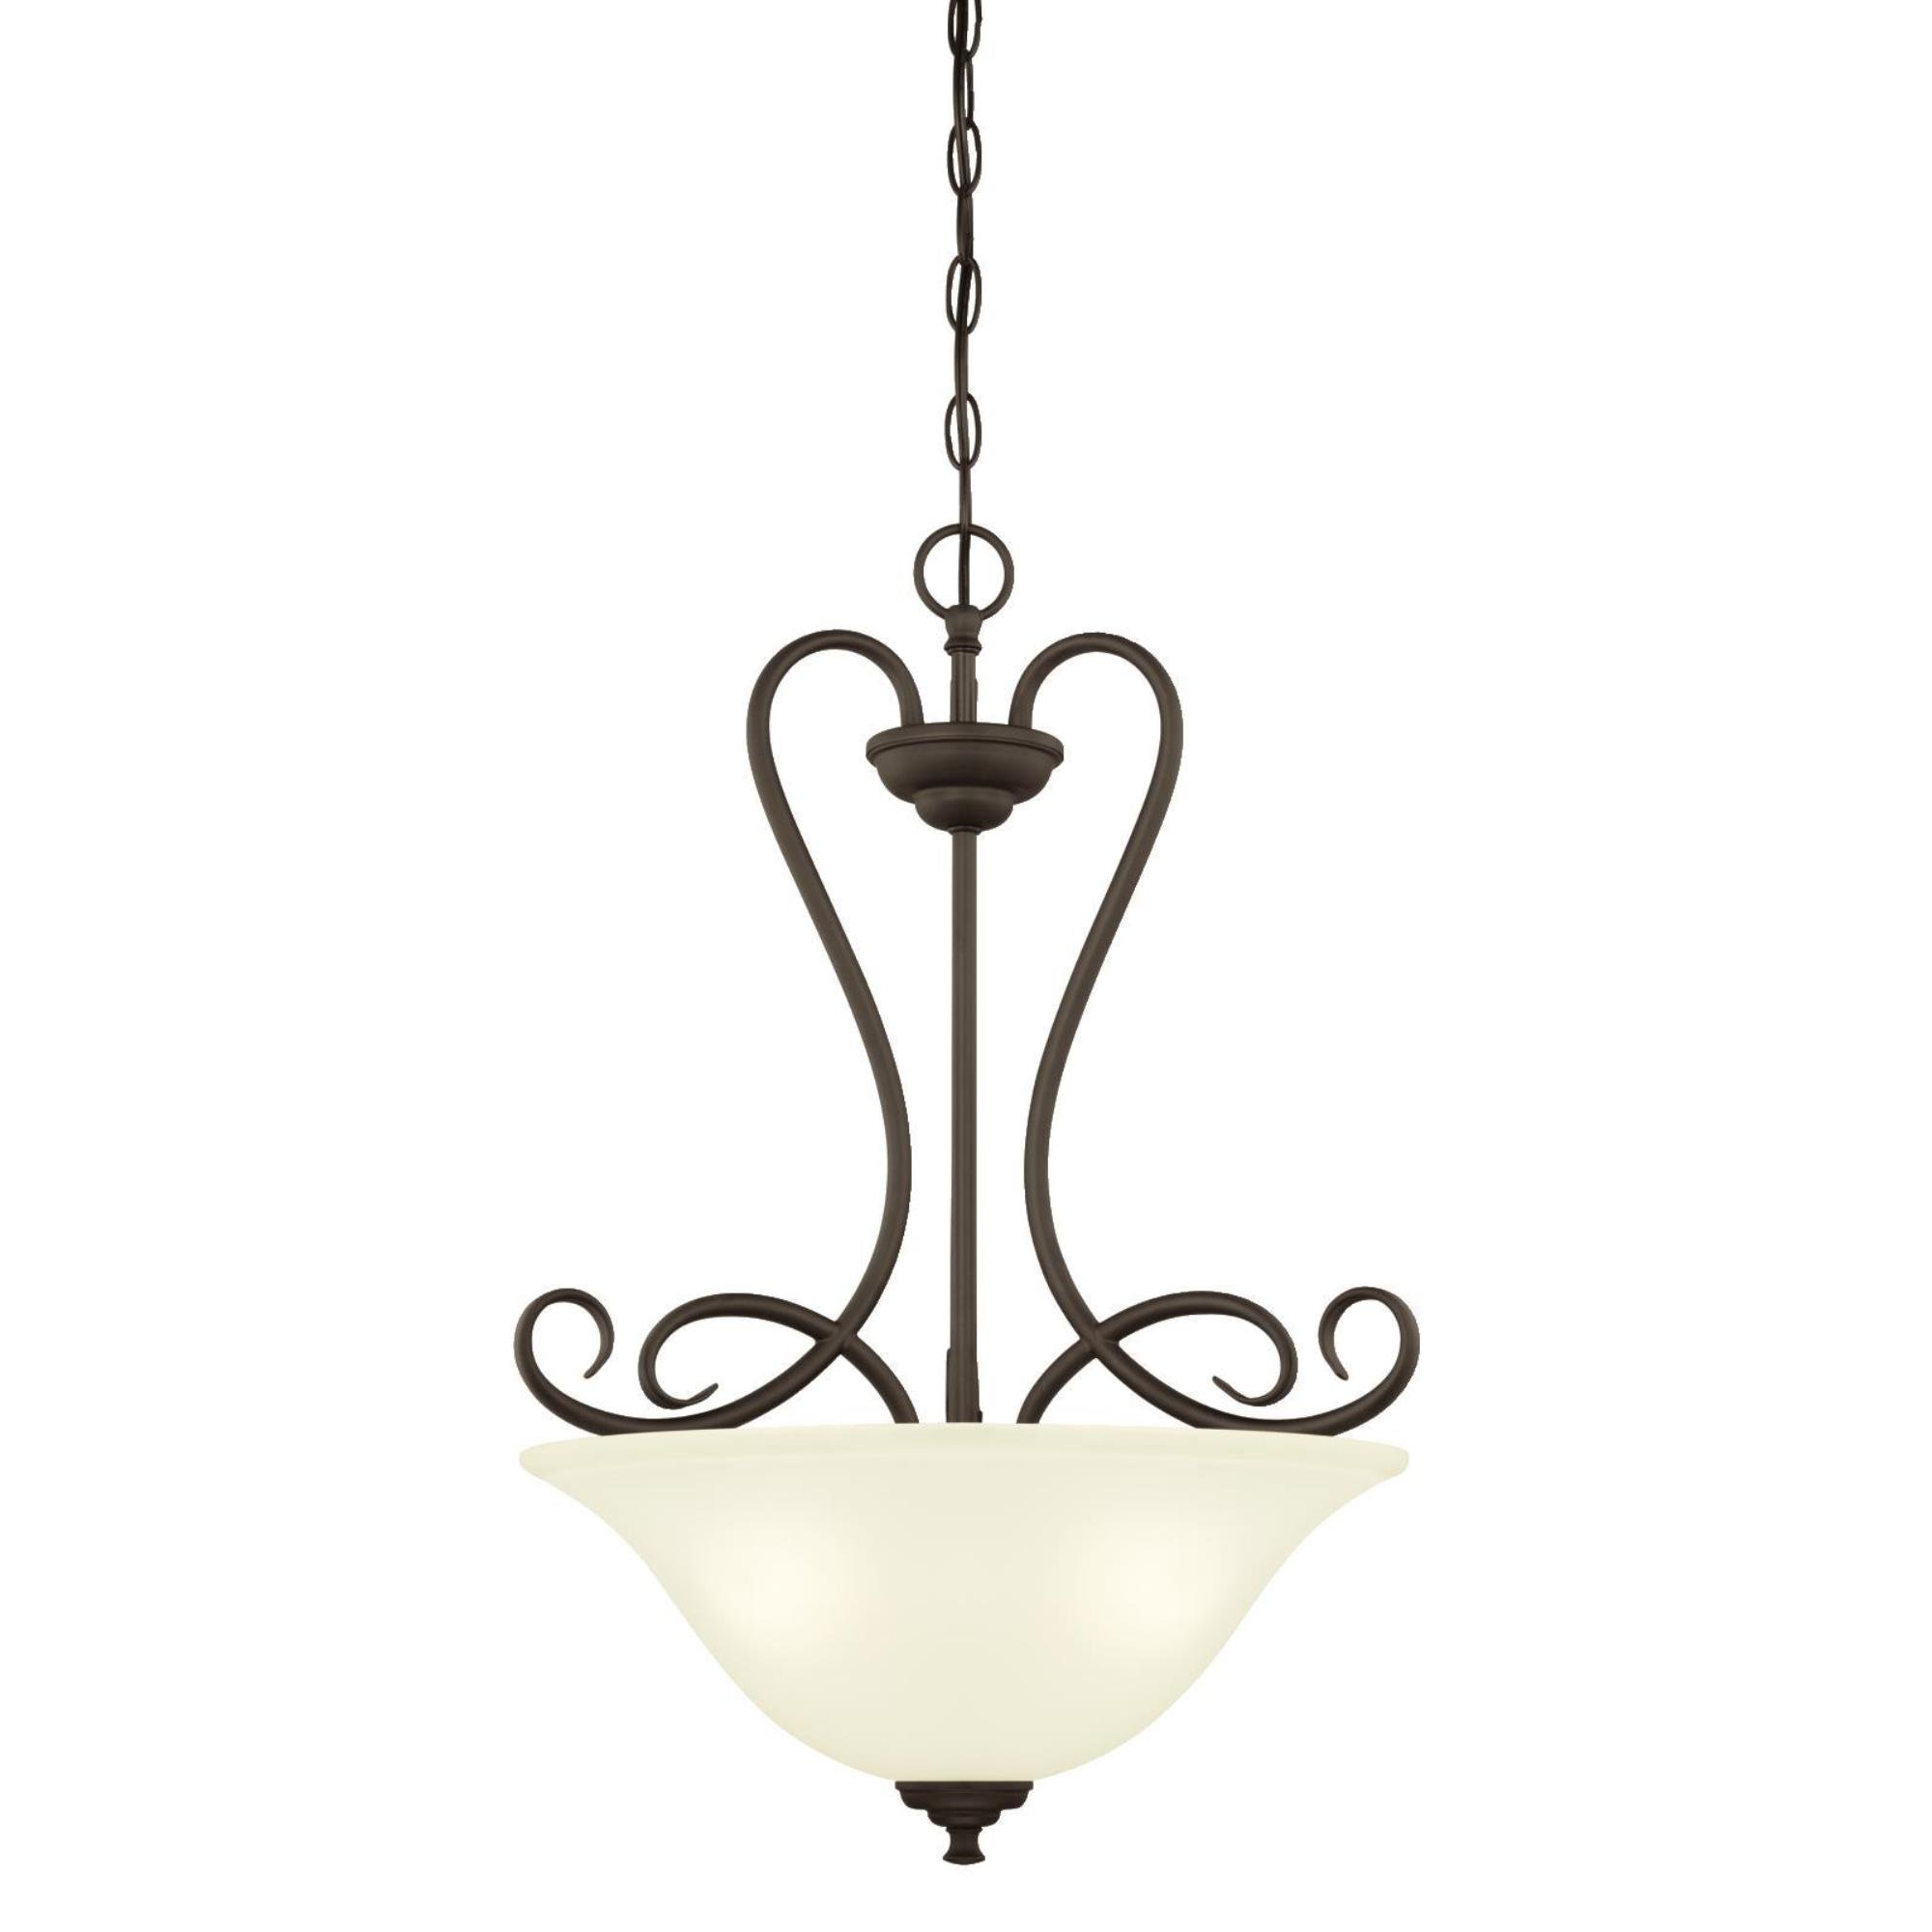 6305800 Dunmore Three-Light Indoor Pendant, Oil Rubbed Bronze Finish with Frosted Glass